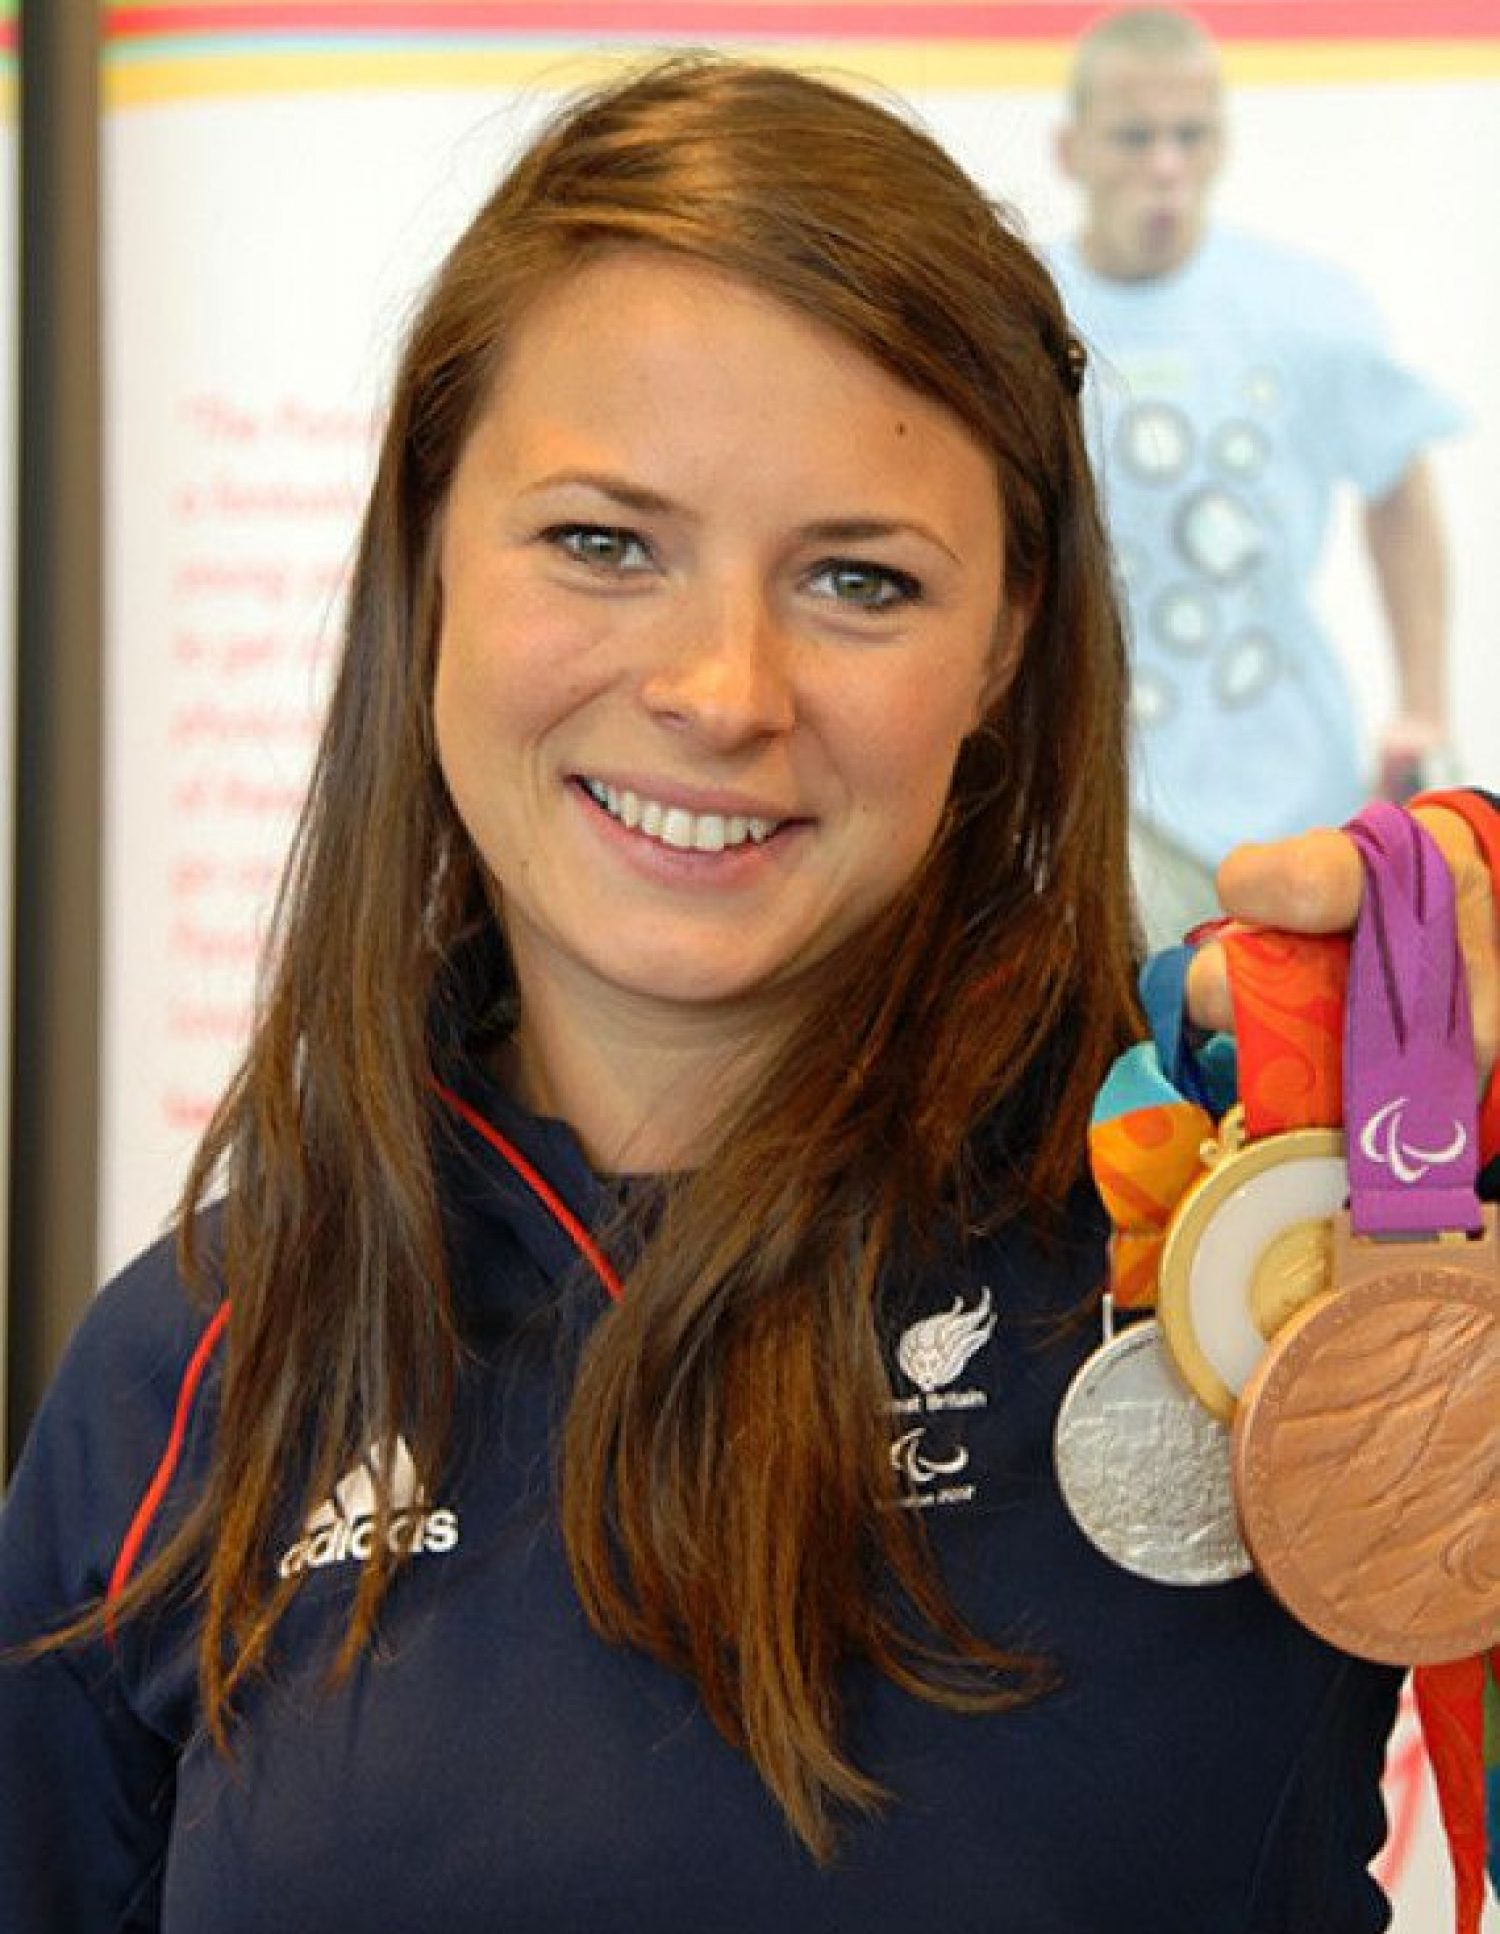 Johnson with her medals